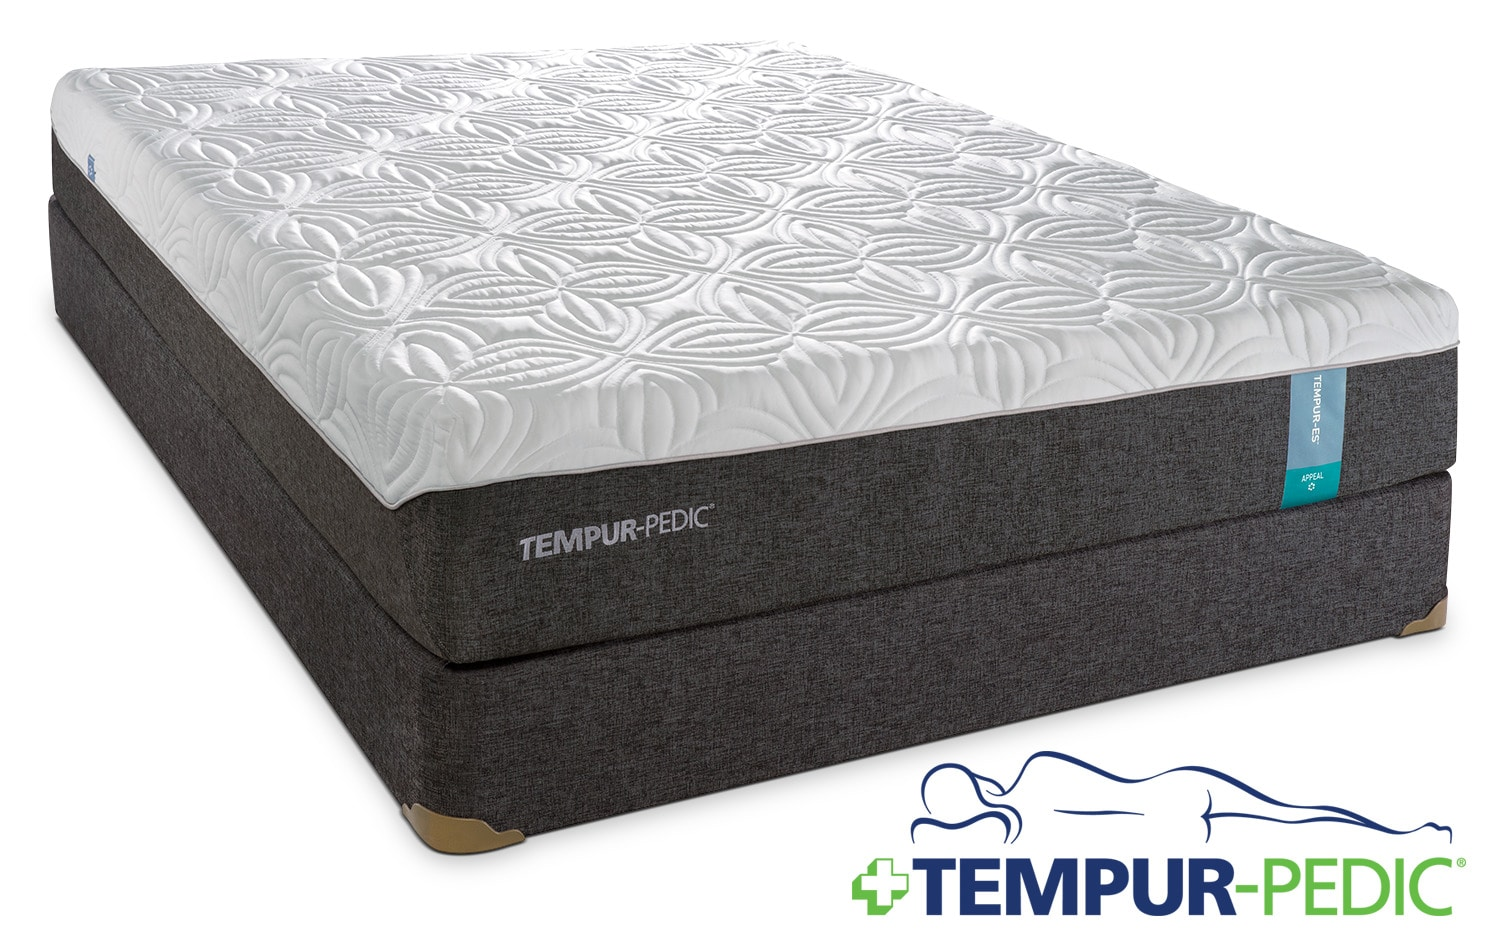 Tempur-Pedic Appeal 2.0 Cushion Firm Full Mattress and Boxspring Set